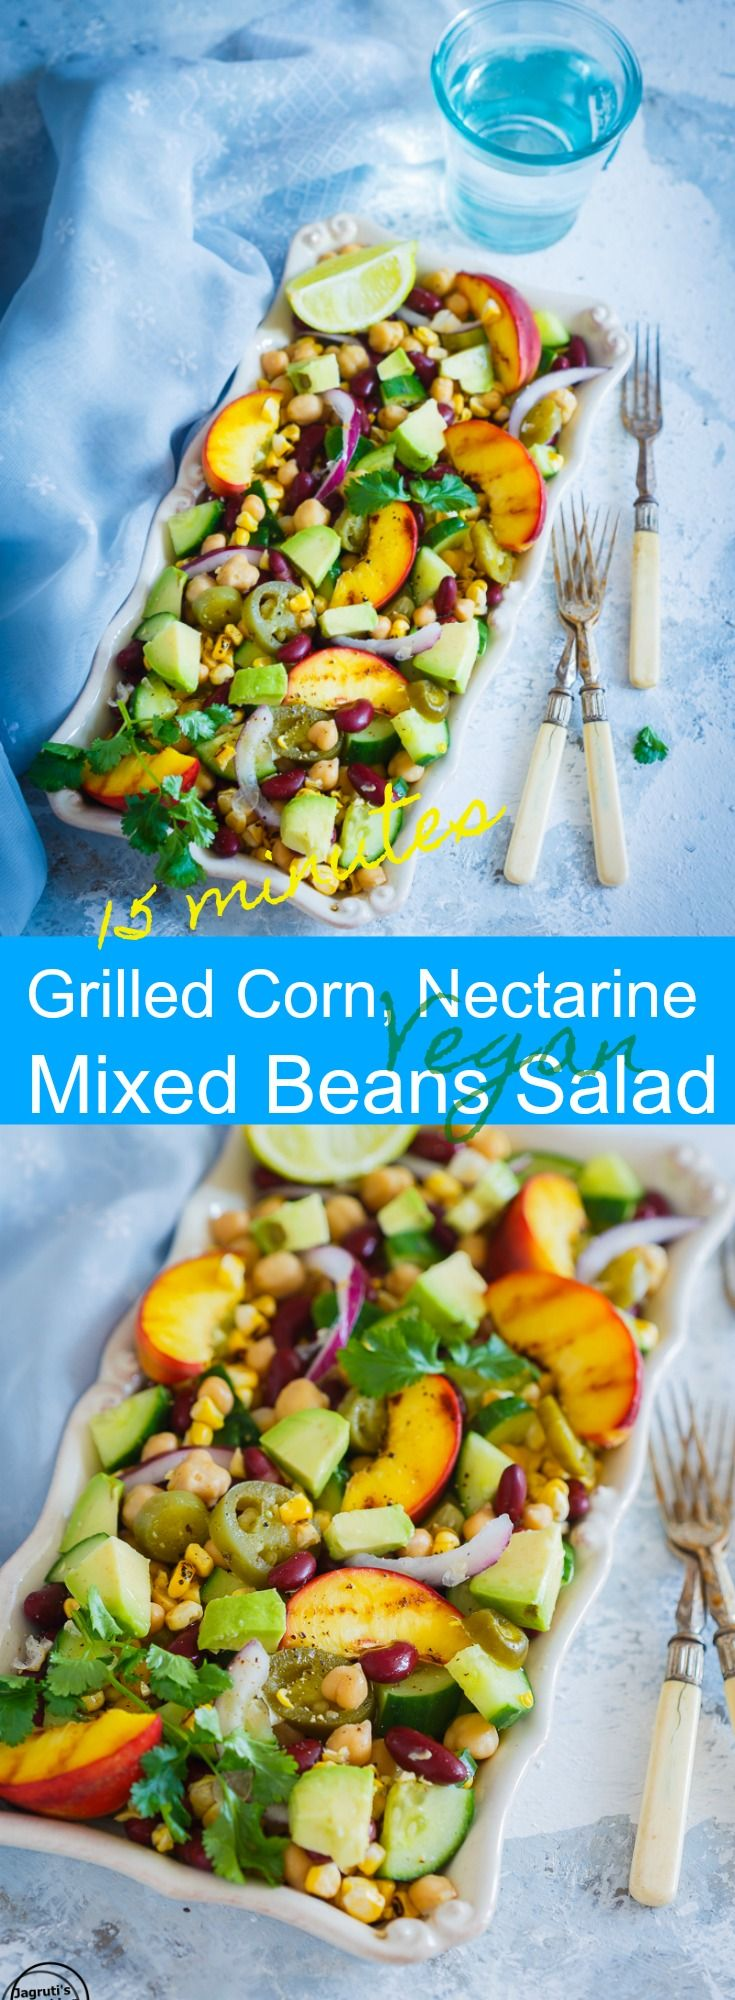 Grilled Corn Nectarine And Mixed Beans Salad Recipe Best